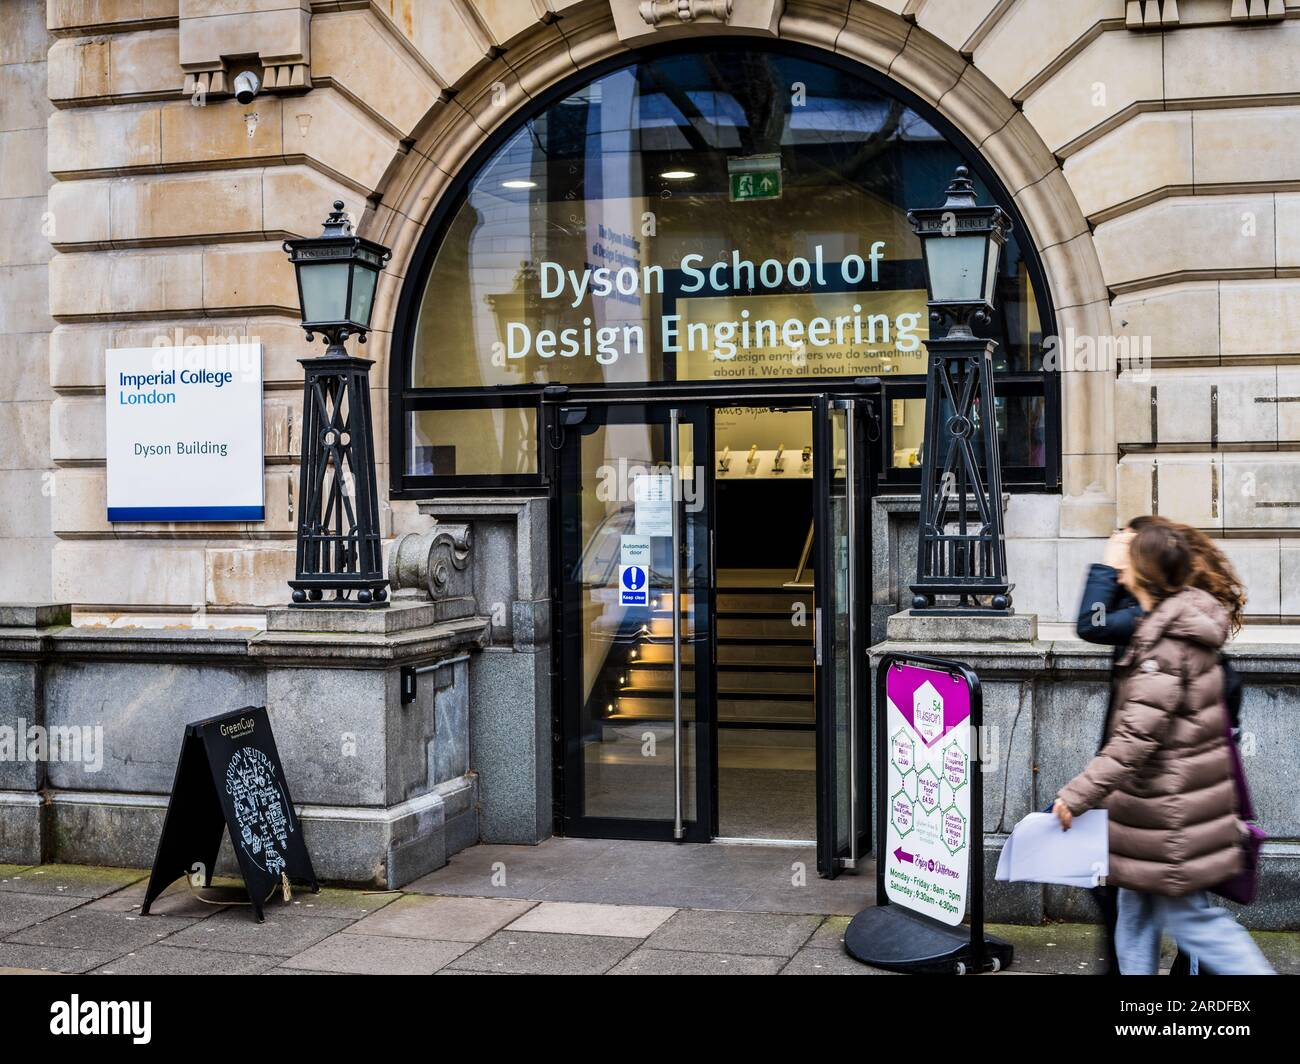 Imperial College London The Dyson School Of Design Engineering At The Imperial College South Kensington Campus In Central London Stock Photo Alamy